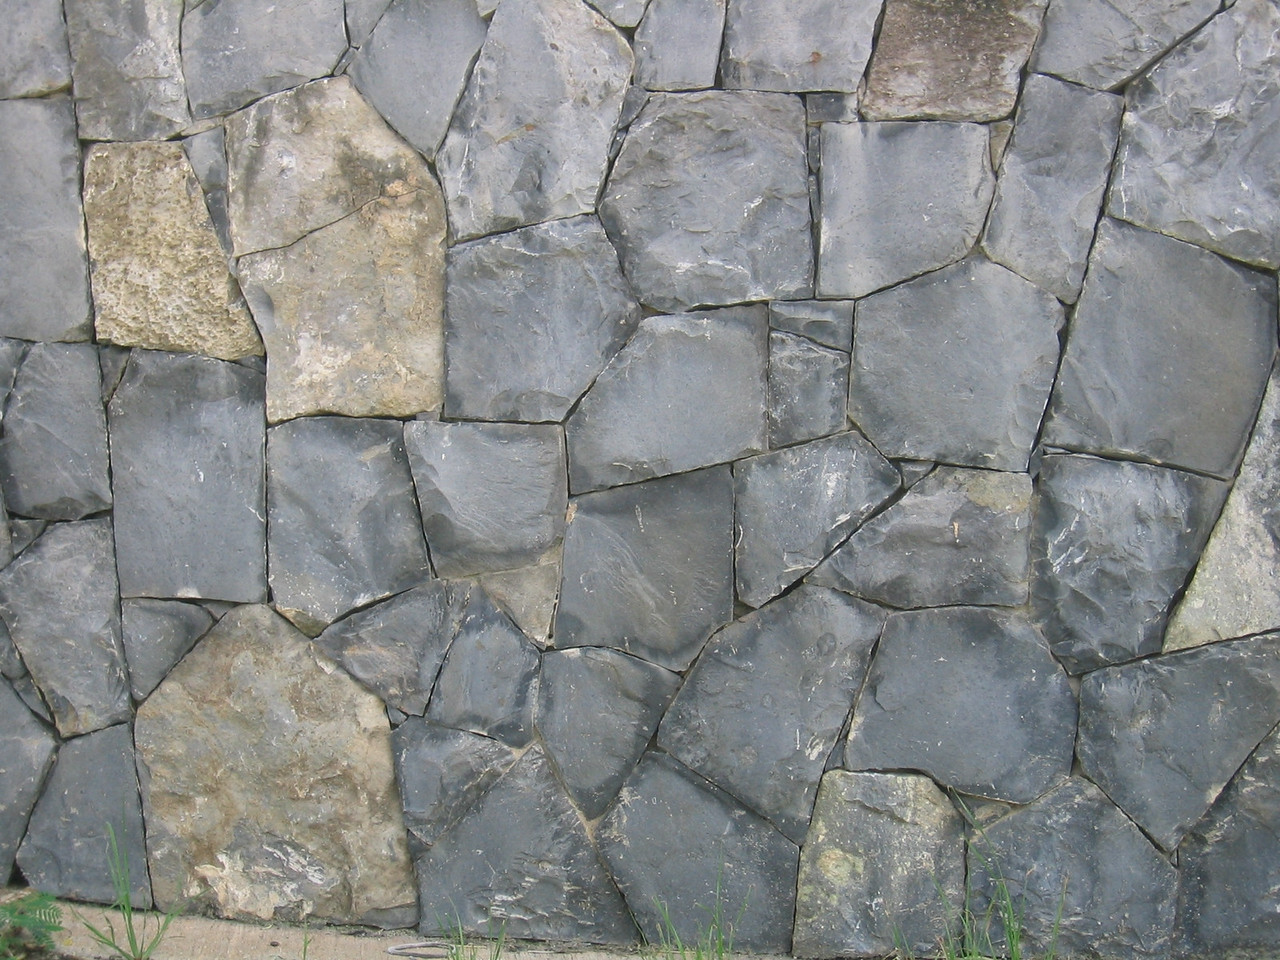 Stone work. Our understanding is that the island government hired a number of Portugese stone masons to work on walls for the highways.